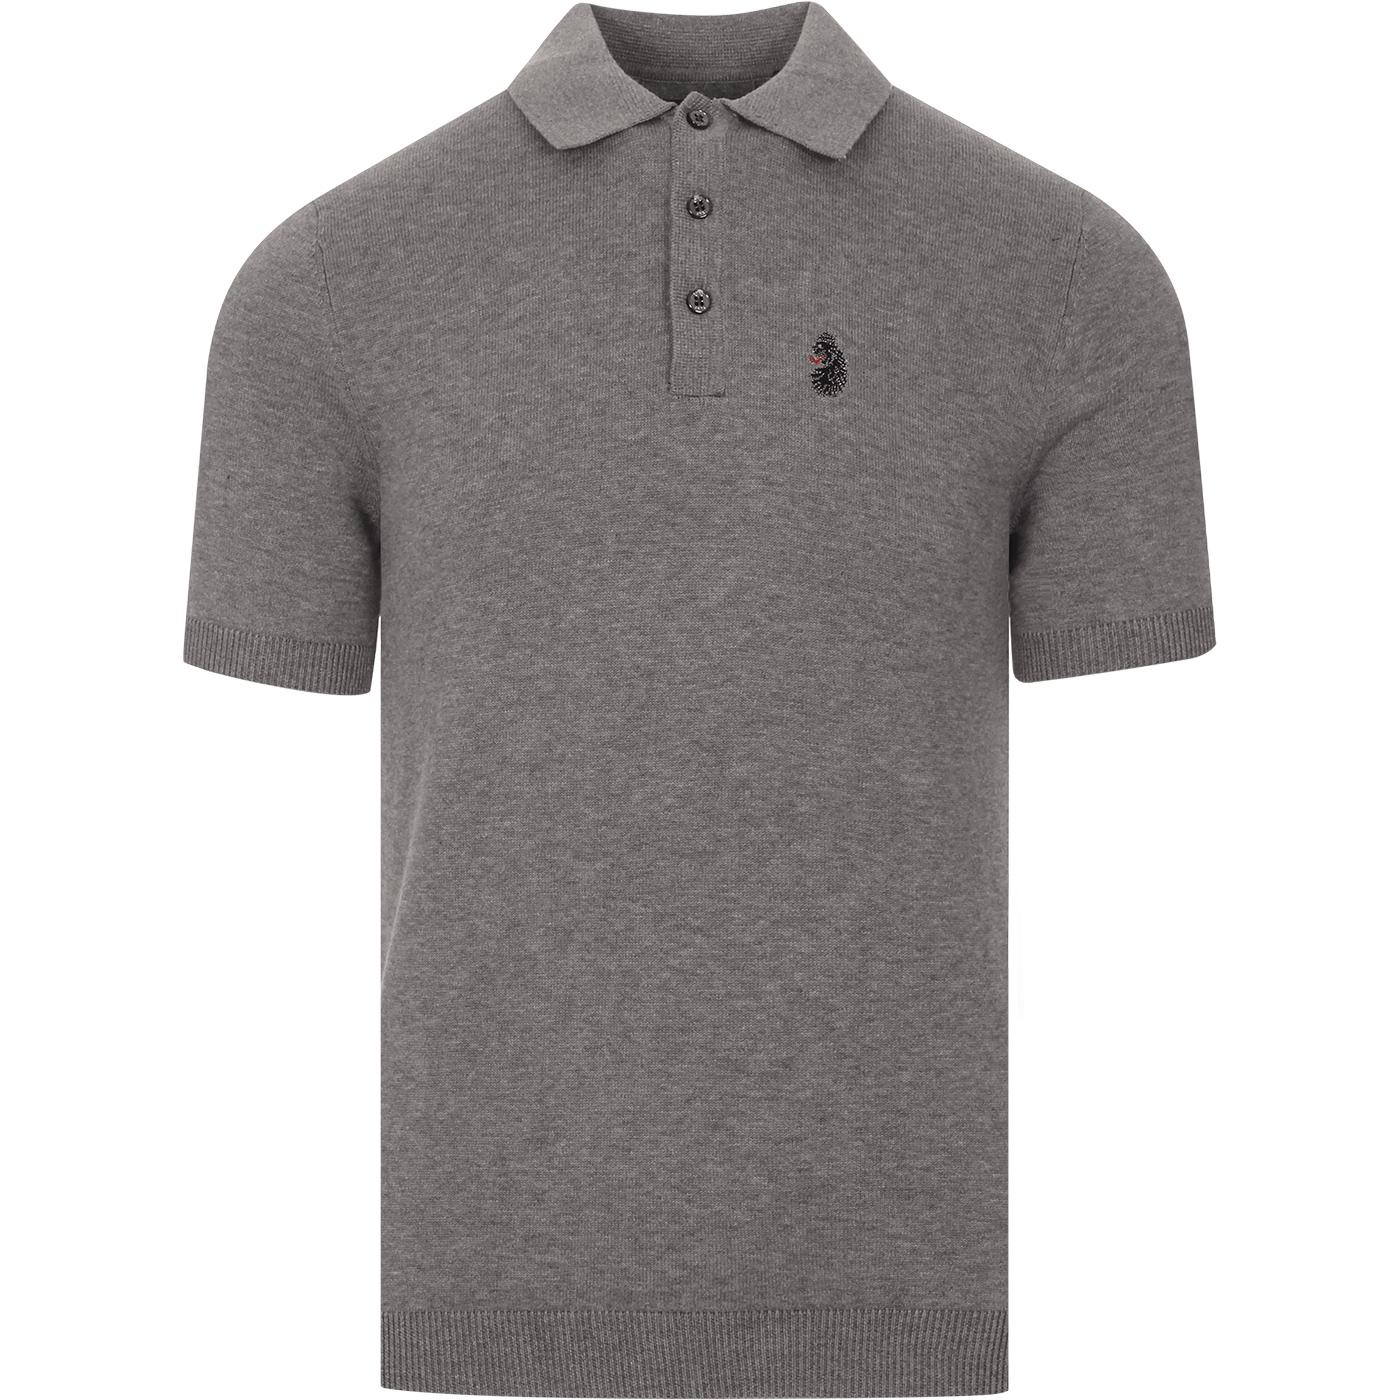 Tungsten LUKE Mod Smart Knit Polo Top (Mid Grey)